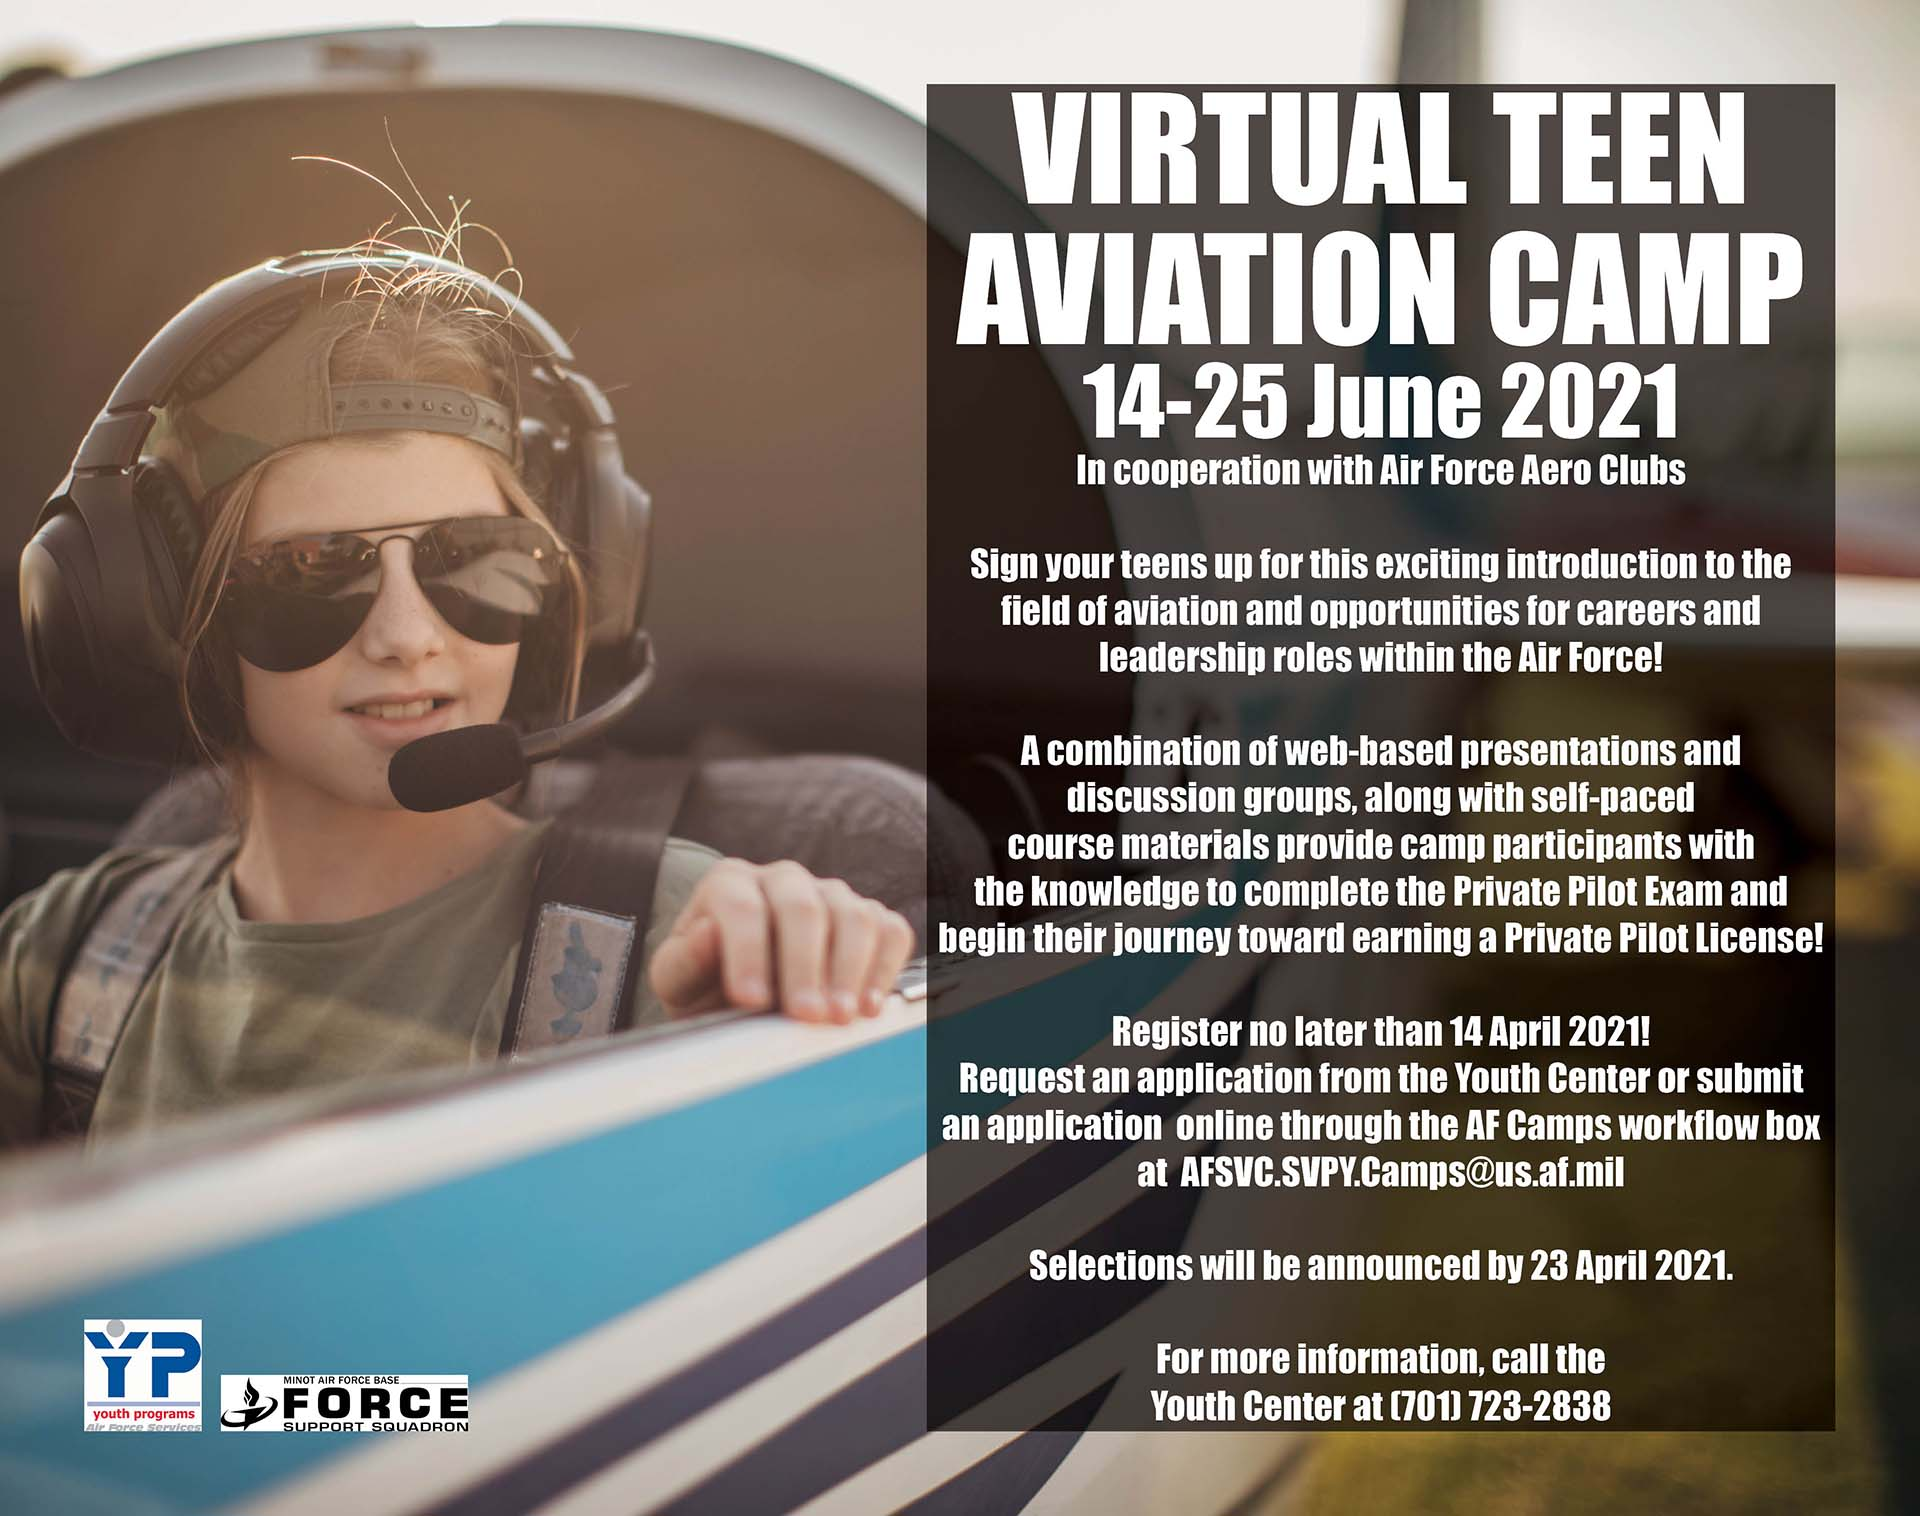 Registration Closes for Virtual Teen Aviation Camp